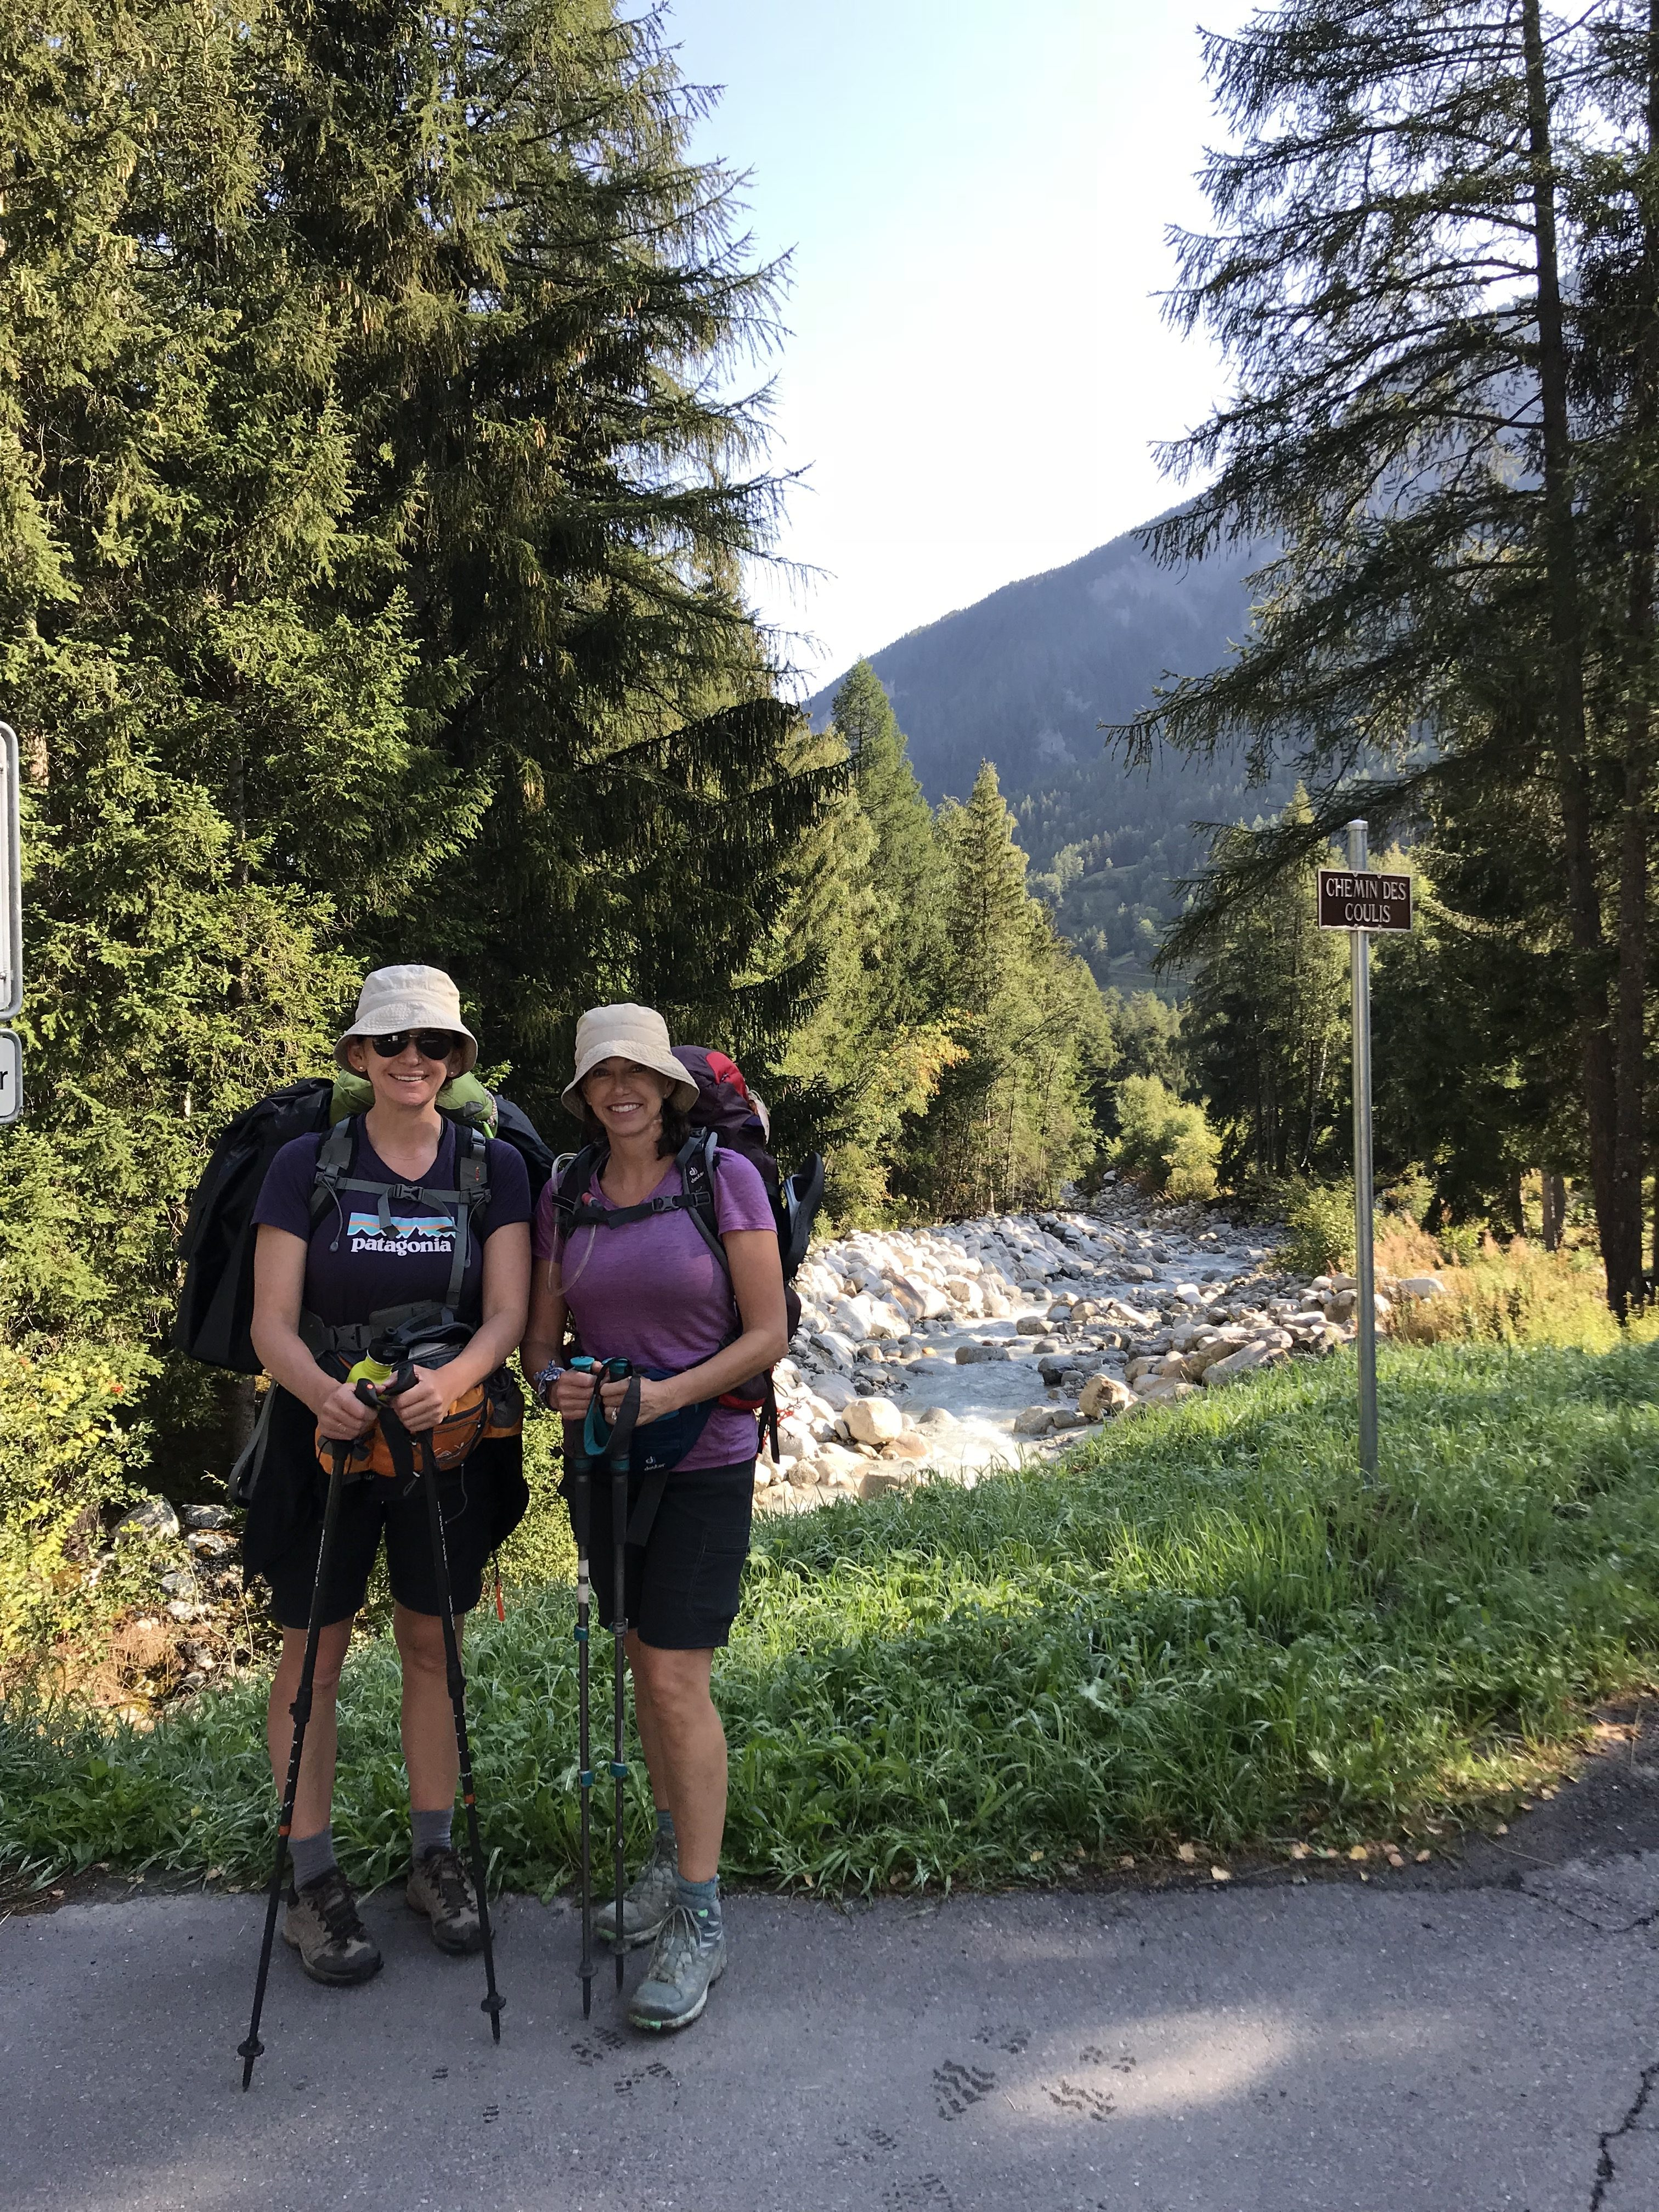 TMB Day 7  Hotel Edelweiss – La Fouly to En Plain Air – Champex Lac